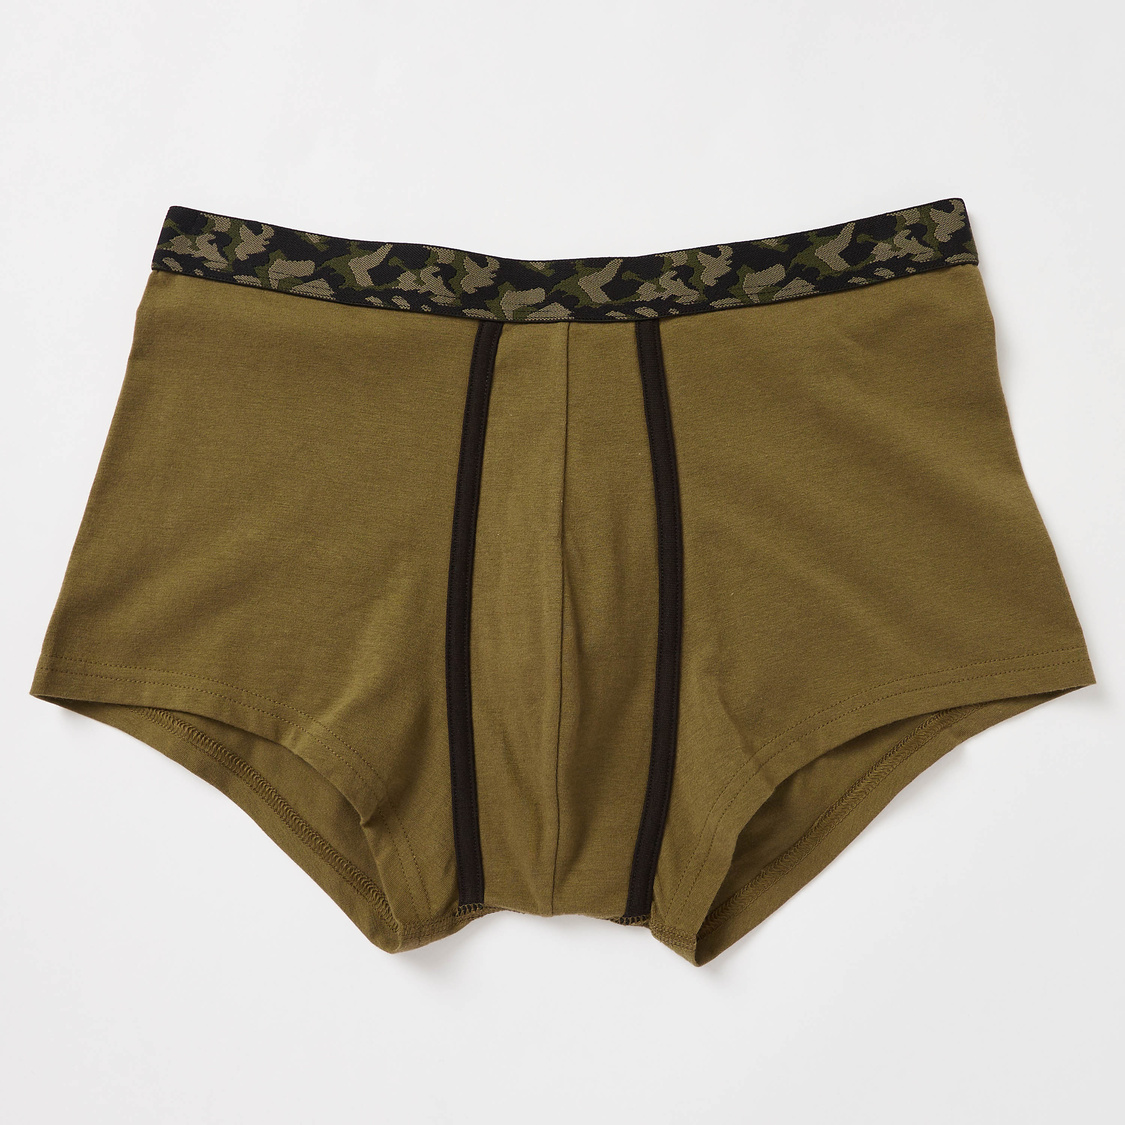 Set of 2 - Camouflage Print Trunks with Wide Elasticised Waistband